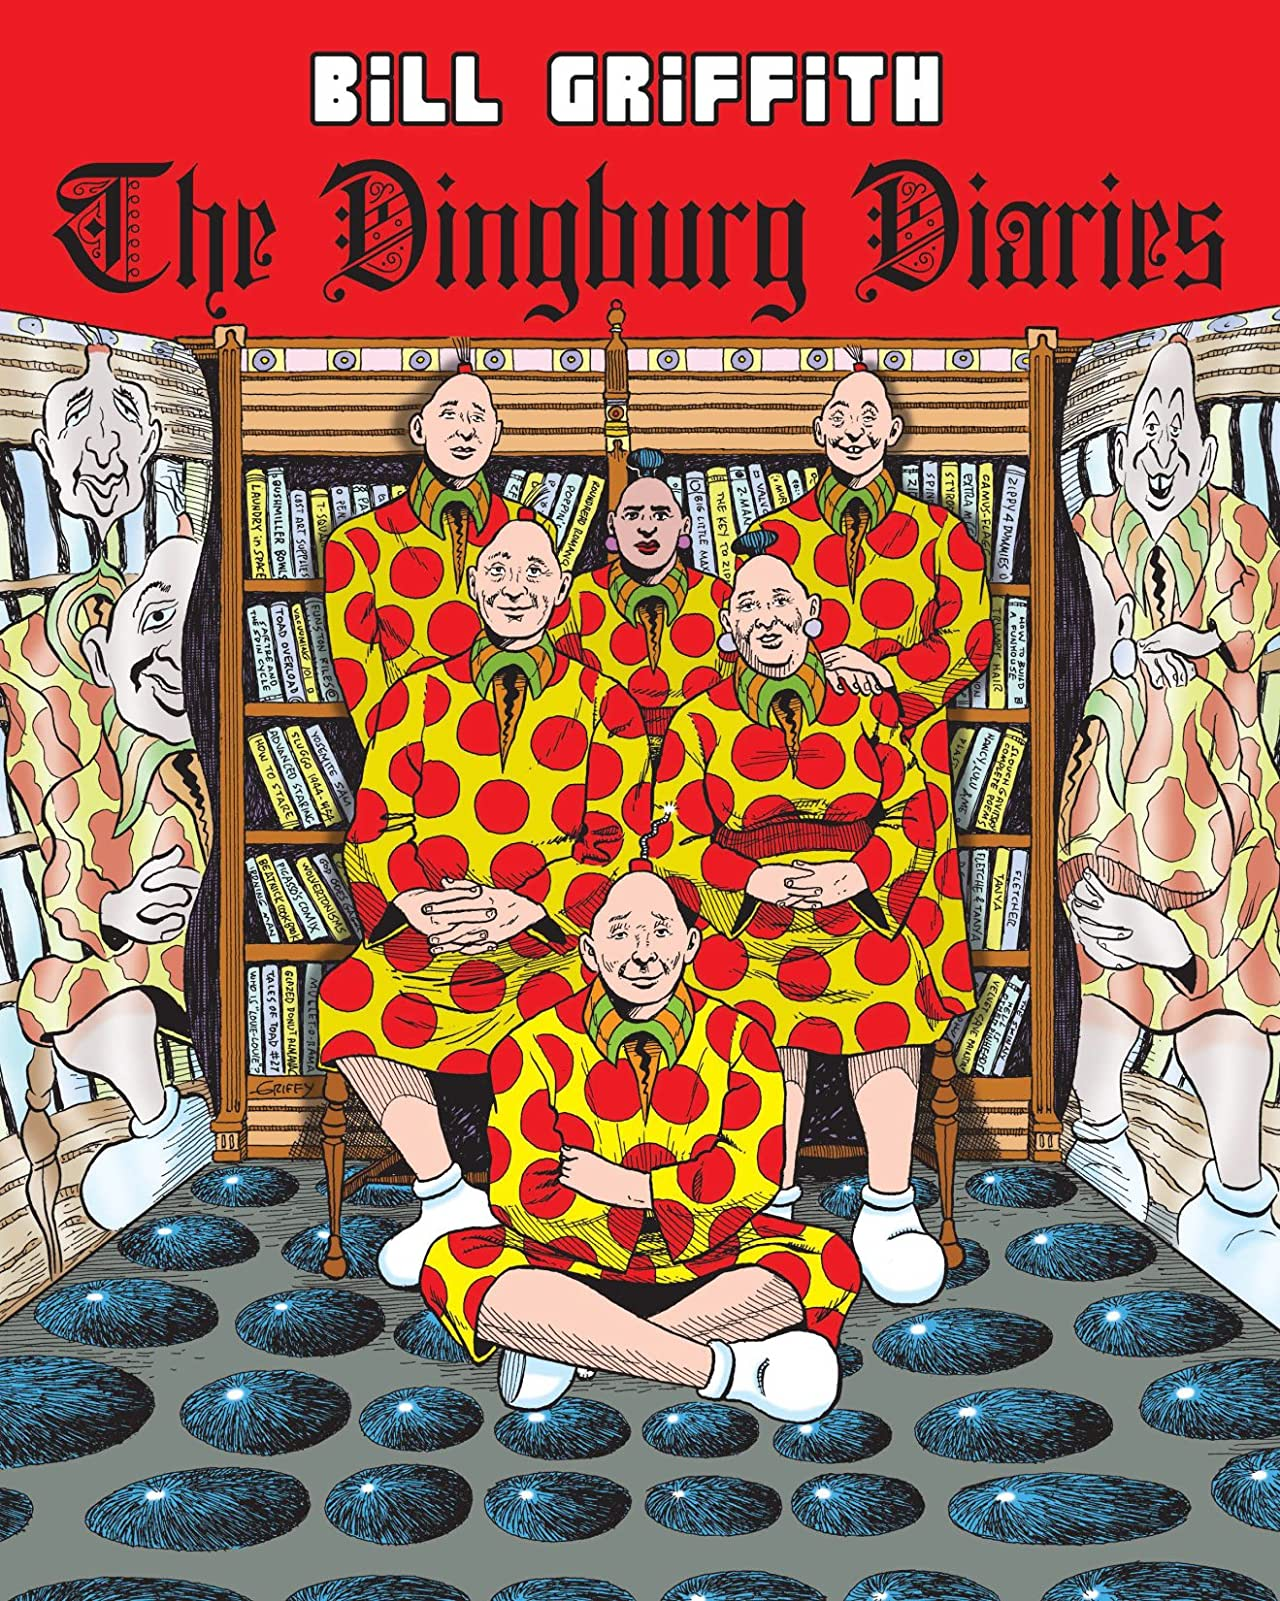 Zippy the Pinhead: The Dingburg Diaries